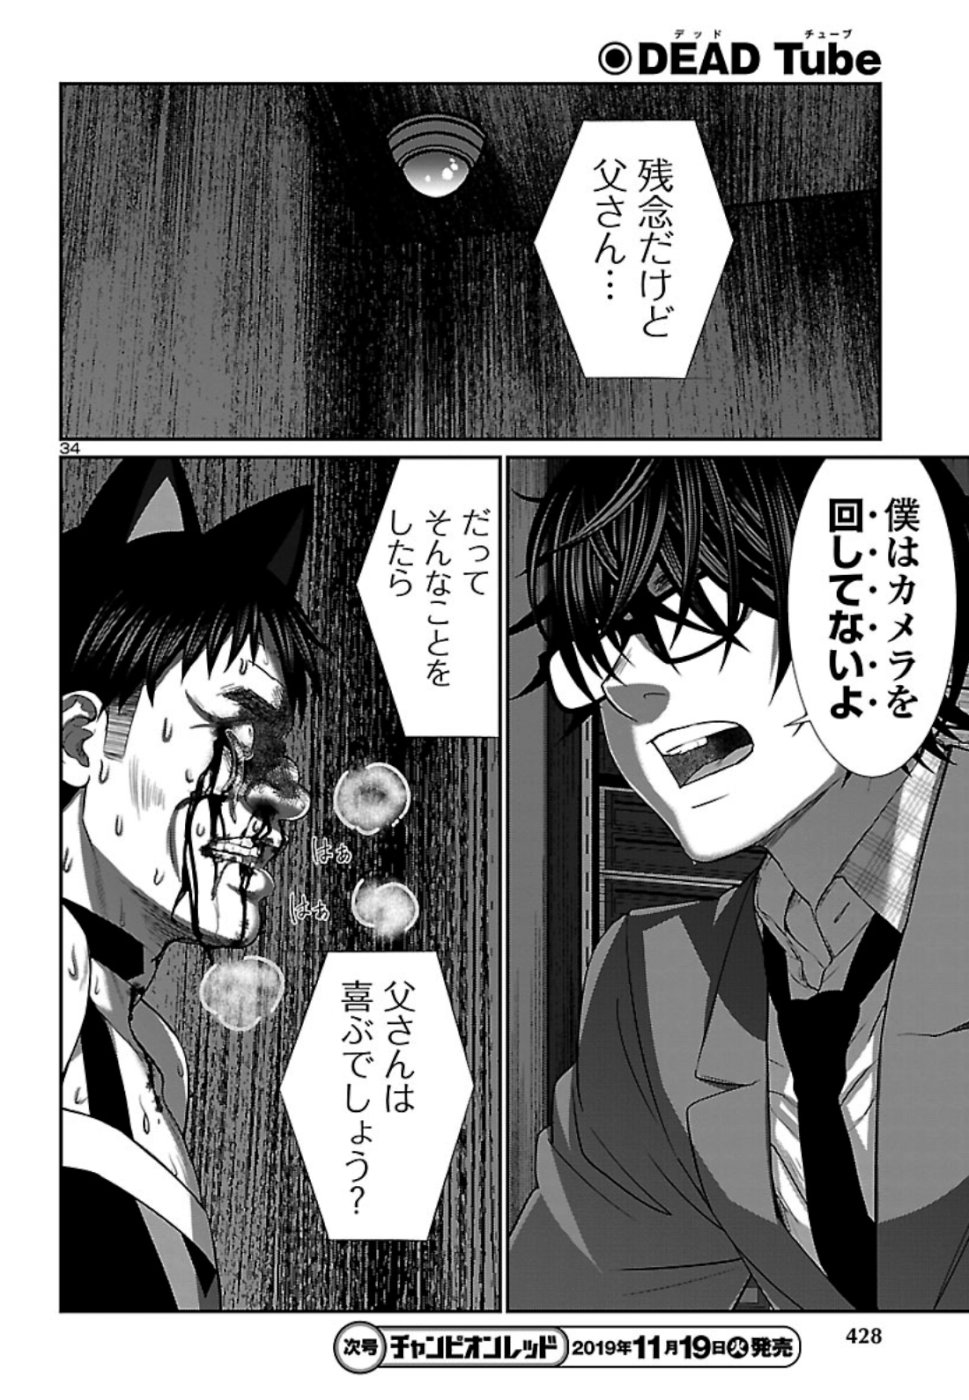 Dead Tube Scan Vf : Chapter, Rawkuma